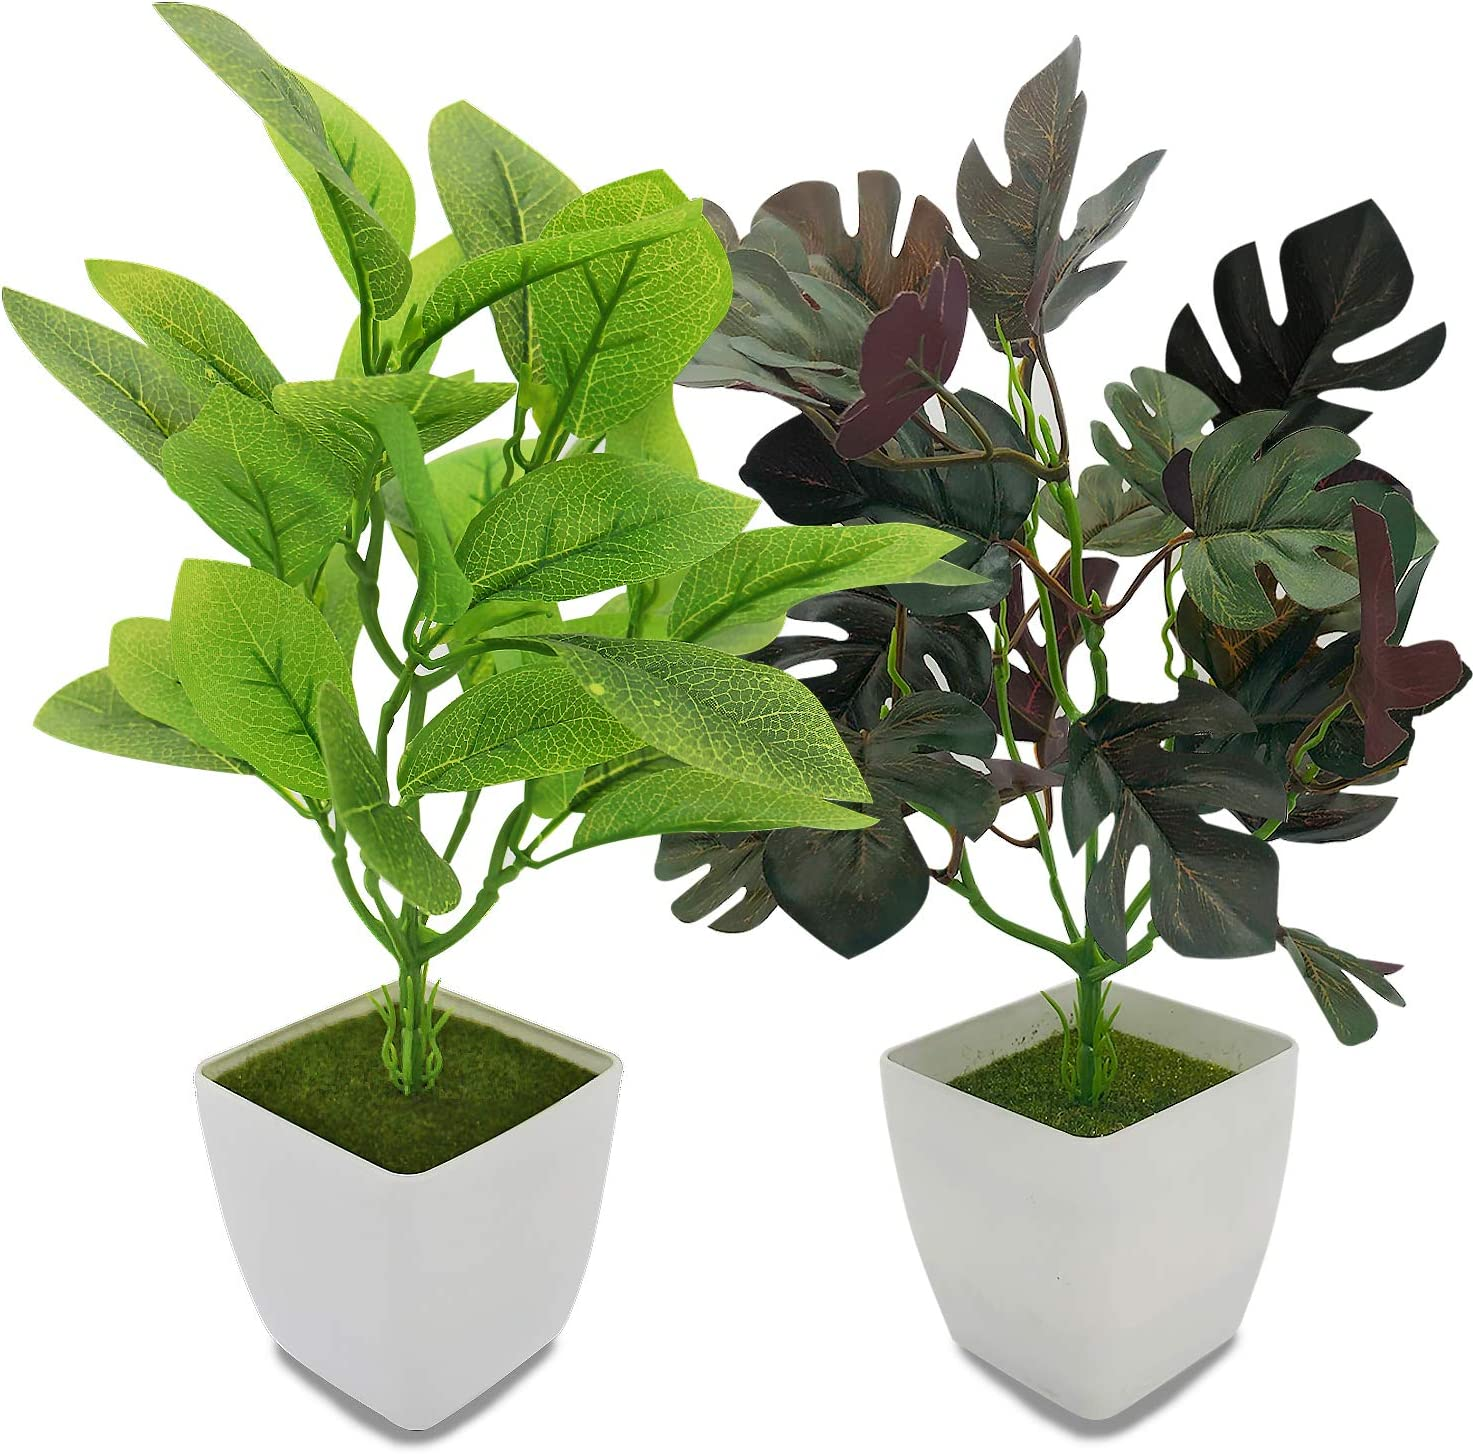 YOLETO 2 Pack Artificial Plants in Pots for Home Decor Indoor Aesthetic, Fall Décor Faux Fake Plant for Desk and Shelf in Bathroom / Bedroom / Living Room/ Farmhouse Christmas Decorations